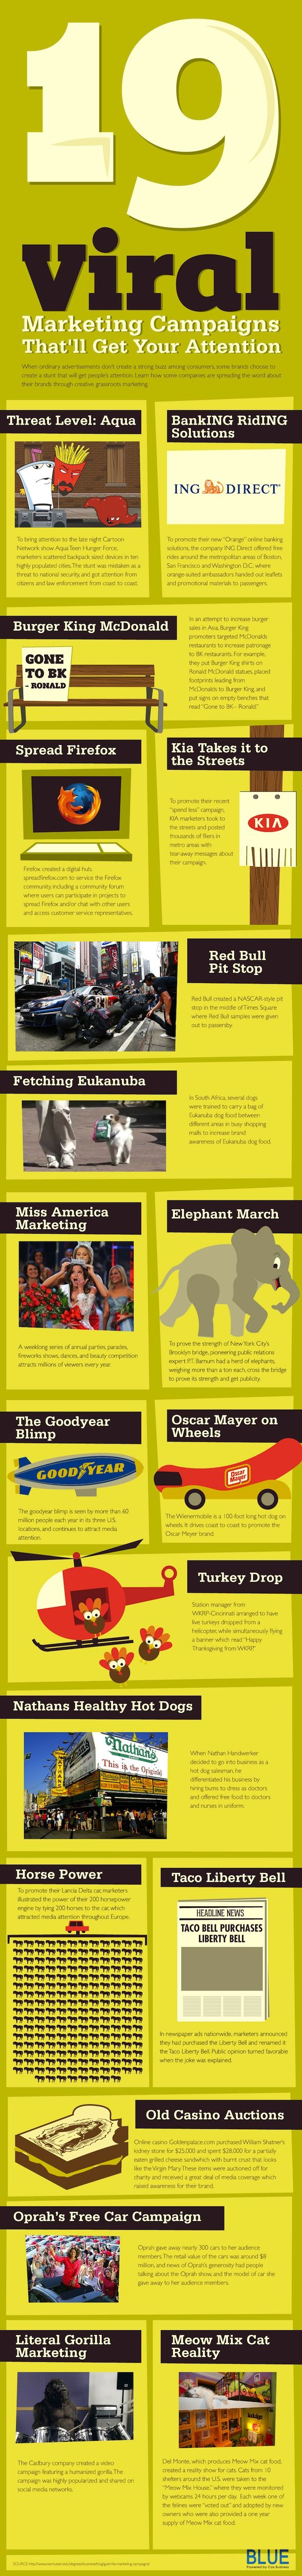 19 Viral Marketing Campaigns that Will Get Your Attention #infographic #socialmedia #marketing